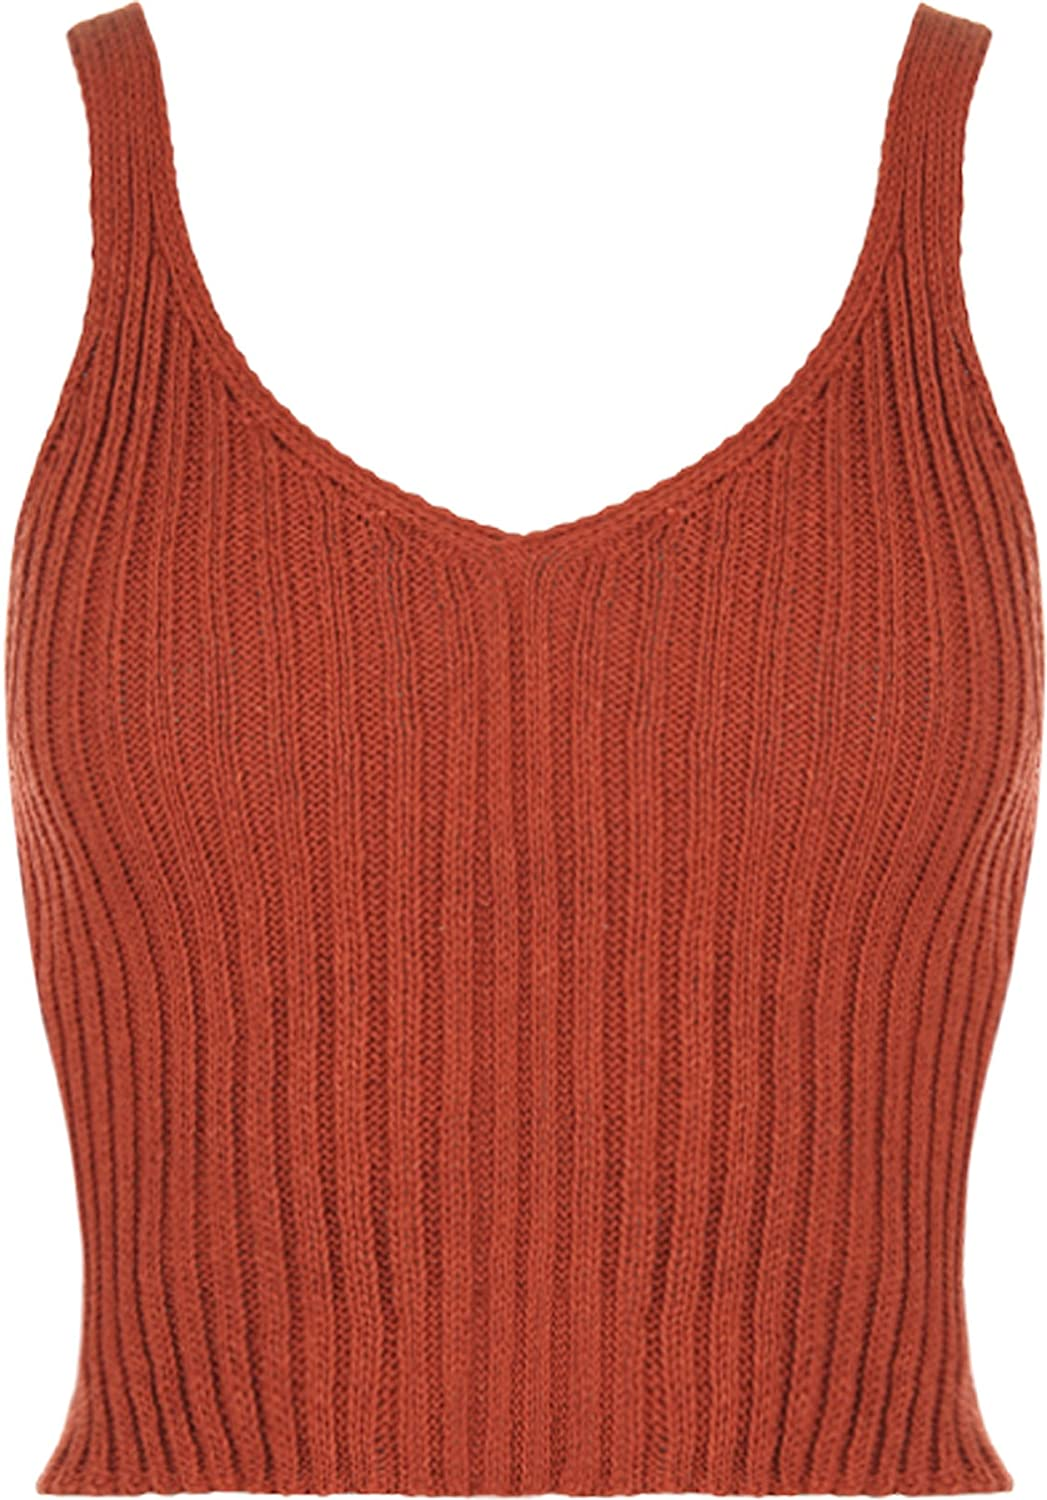 fae02026f5d WearAll Women s Stretch Sleeveless Ribbed Knitted Crop Short Vest Top 8-14  72196